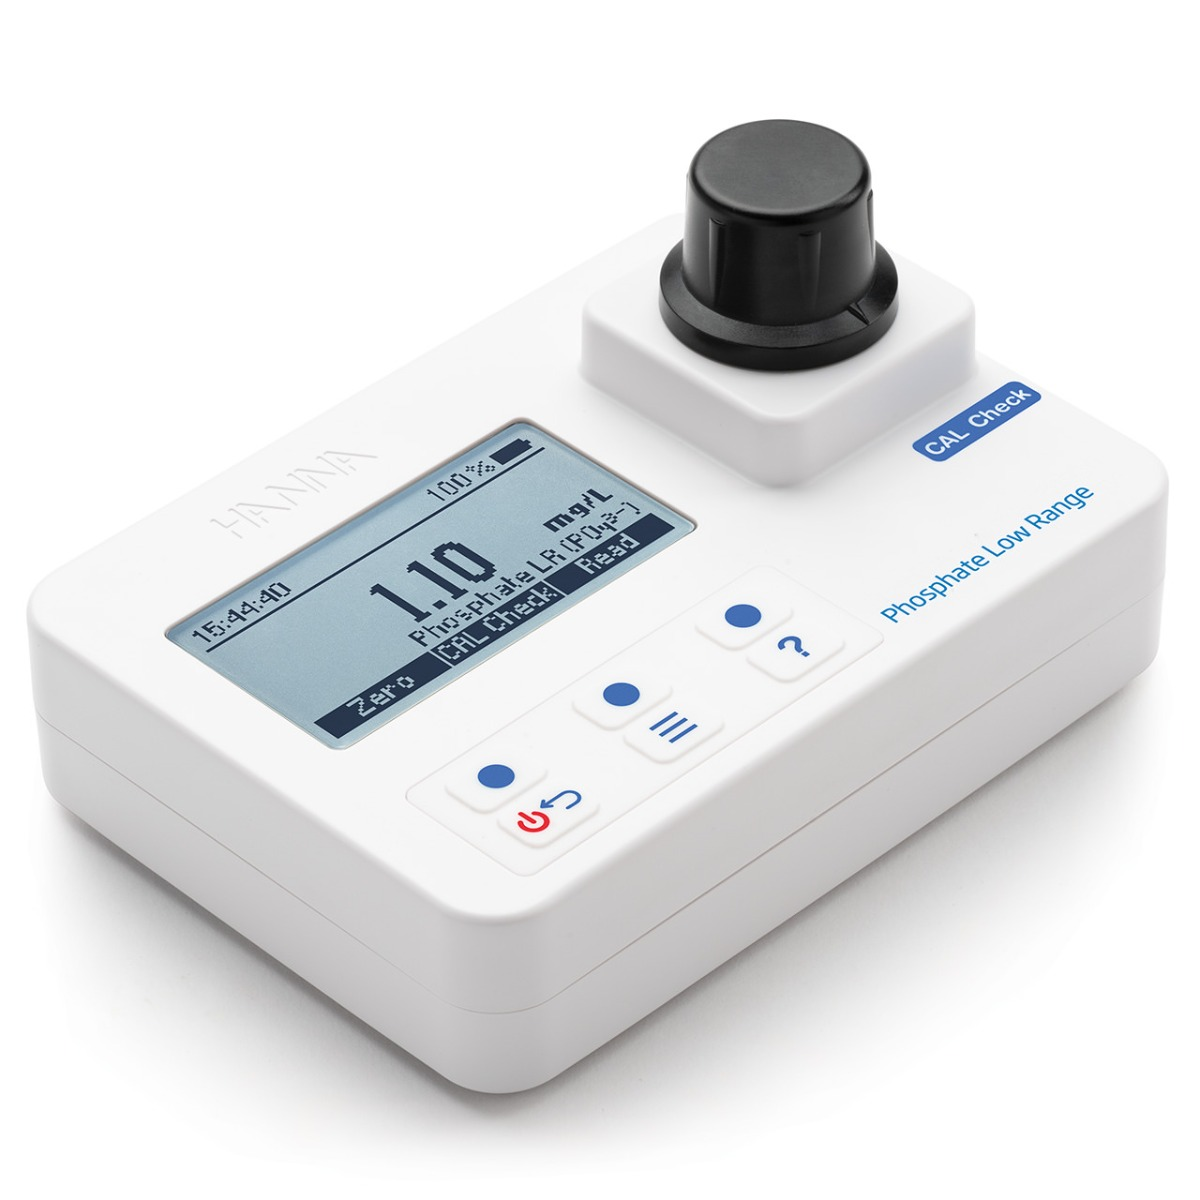 Phosphate Low Range Portable Photometer with CAL Check - HI97713